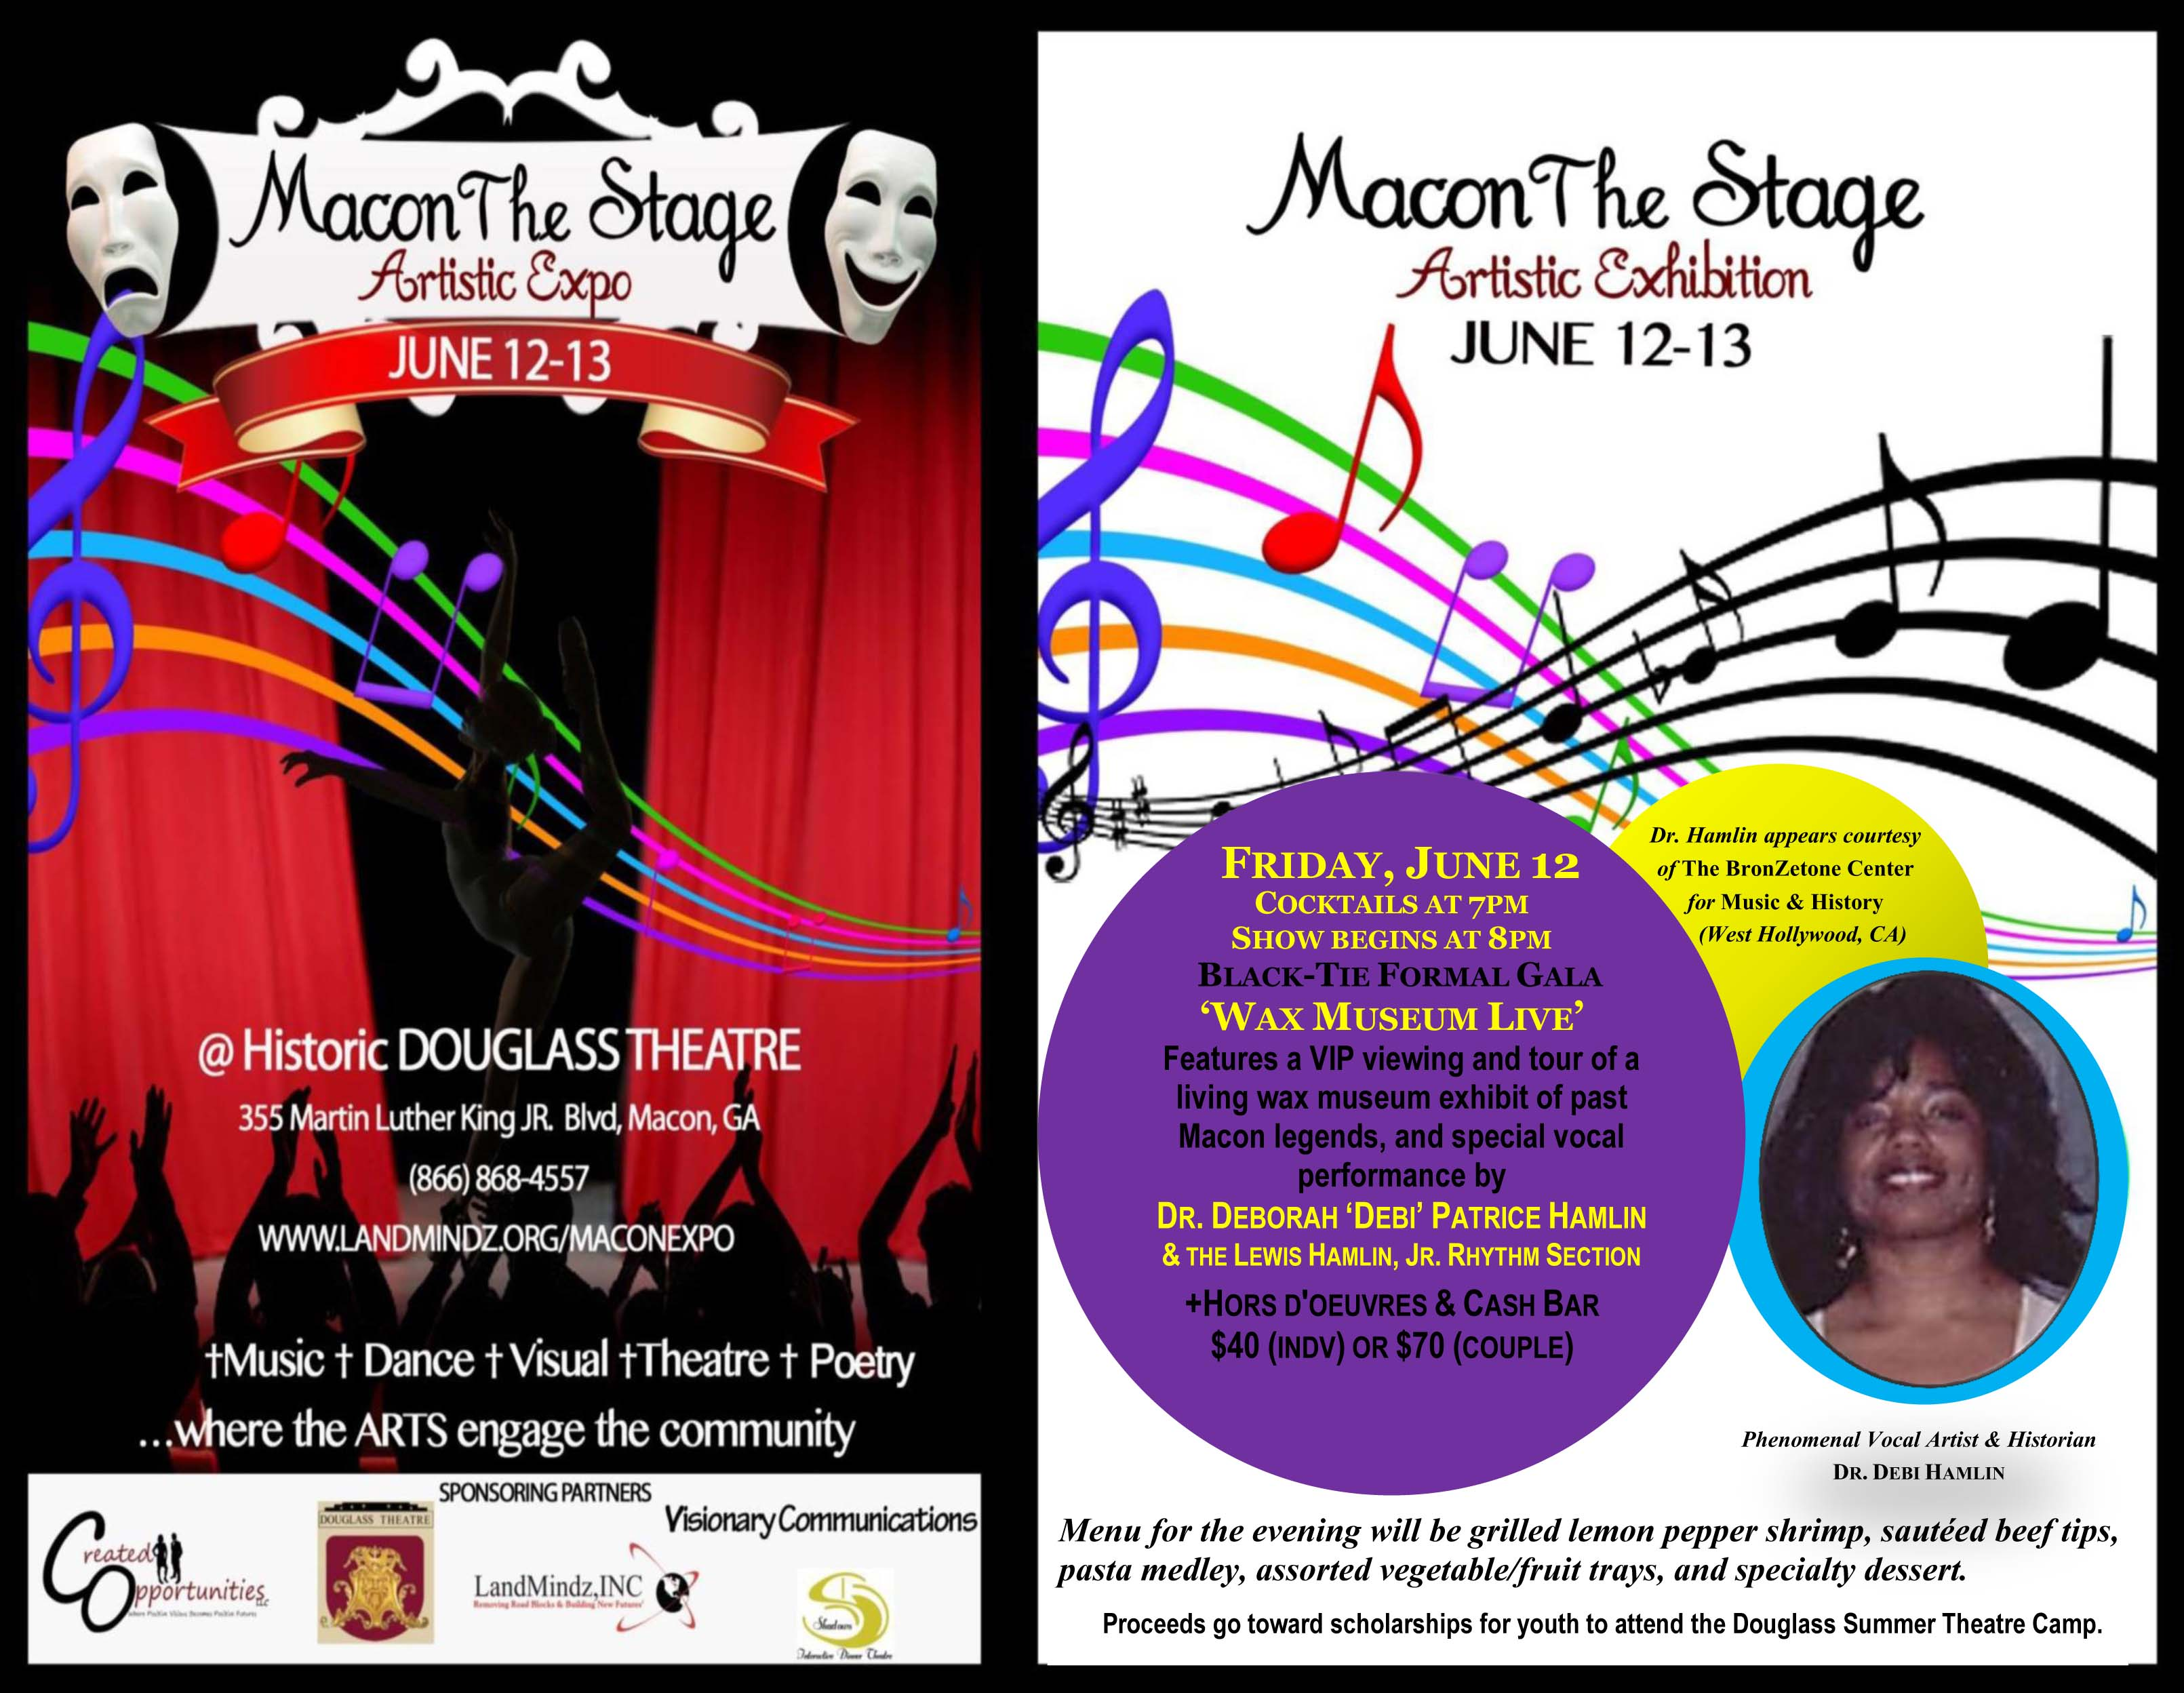 Macon the Stage:Artistic Expo